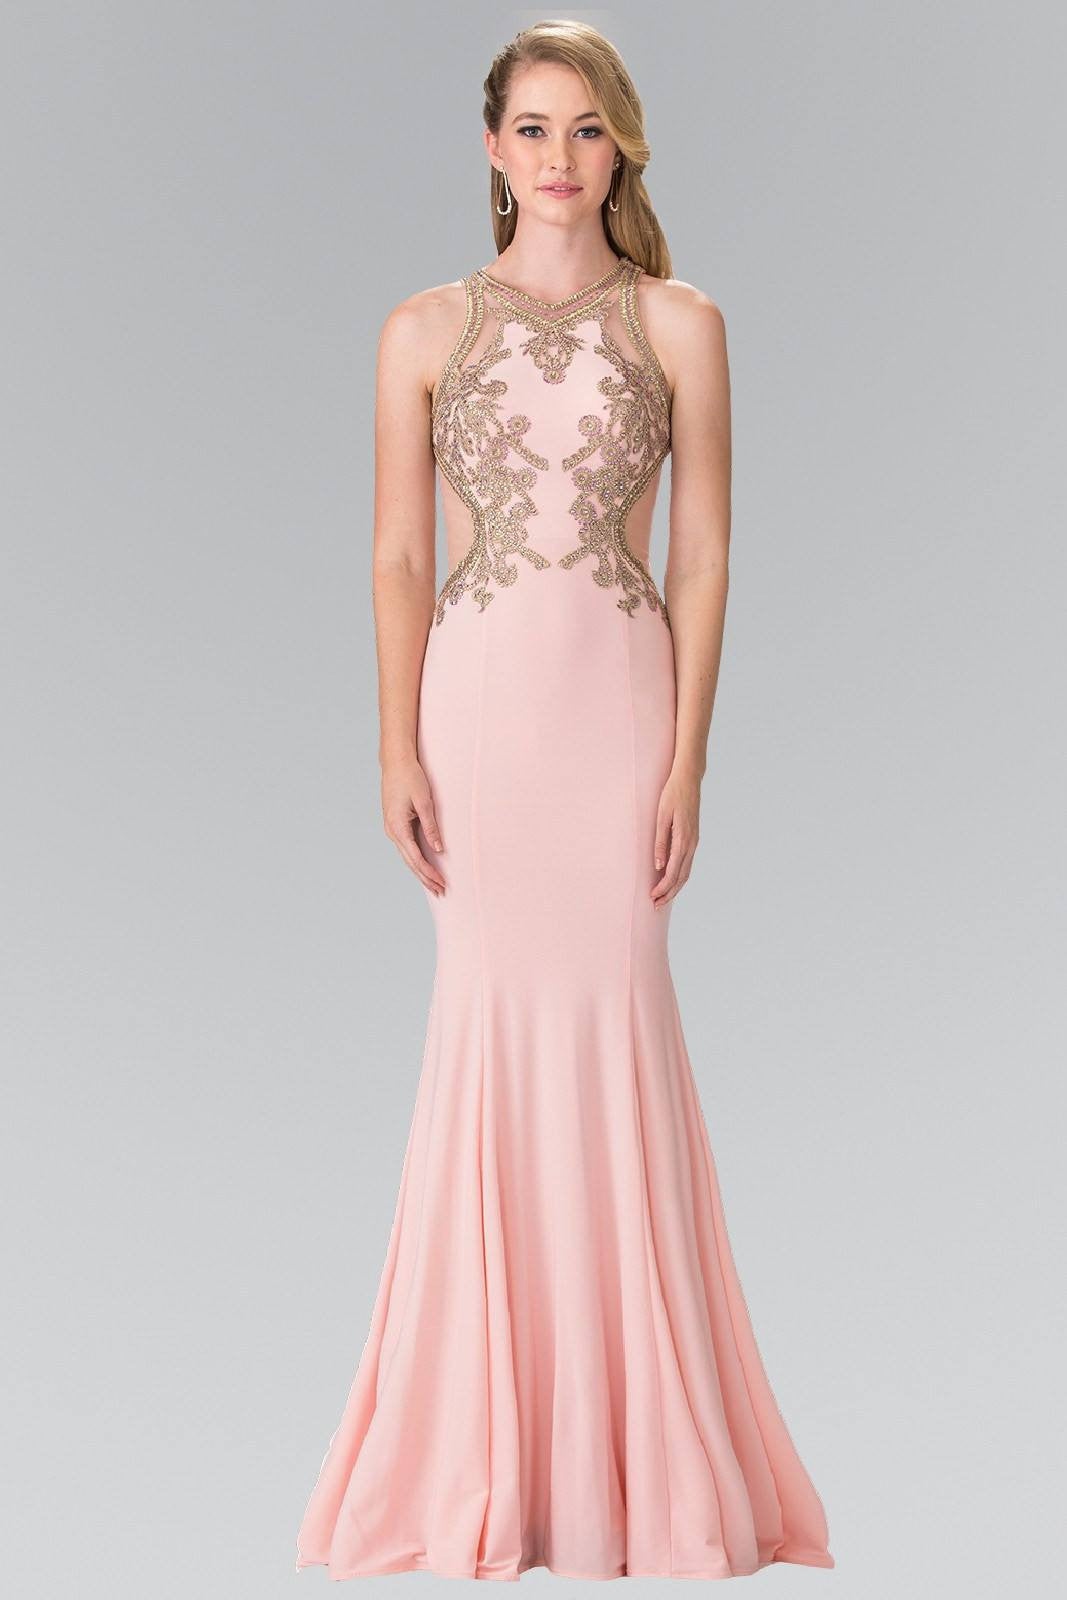 Gold top long prom dress GL2321 – Simply Fab Dress